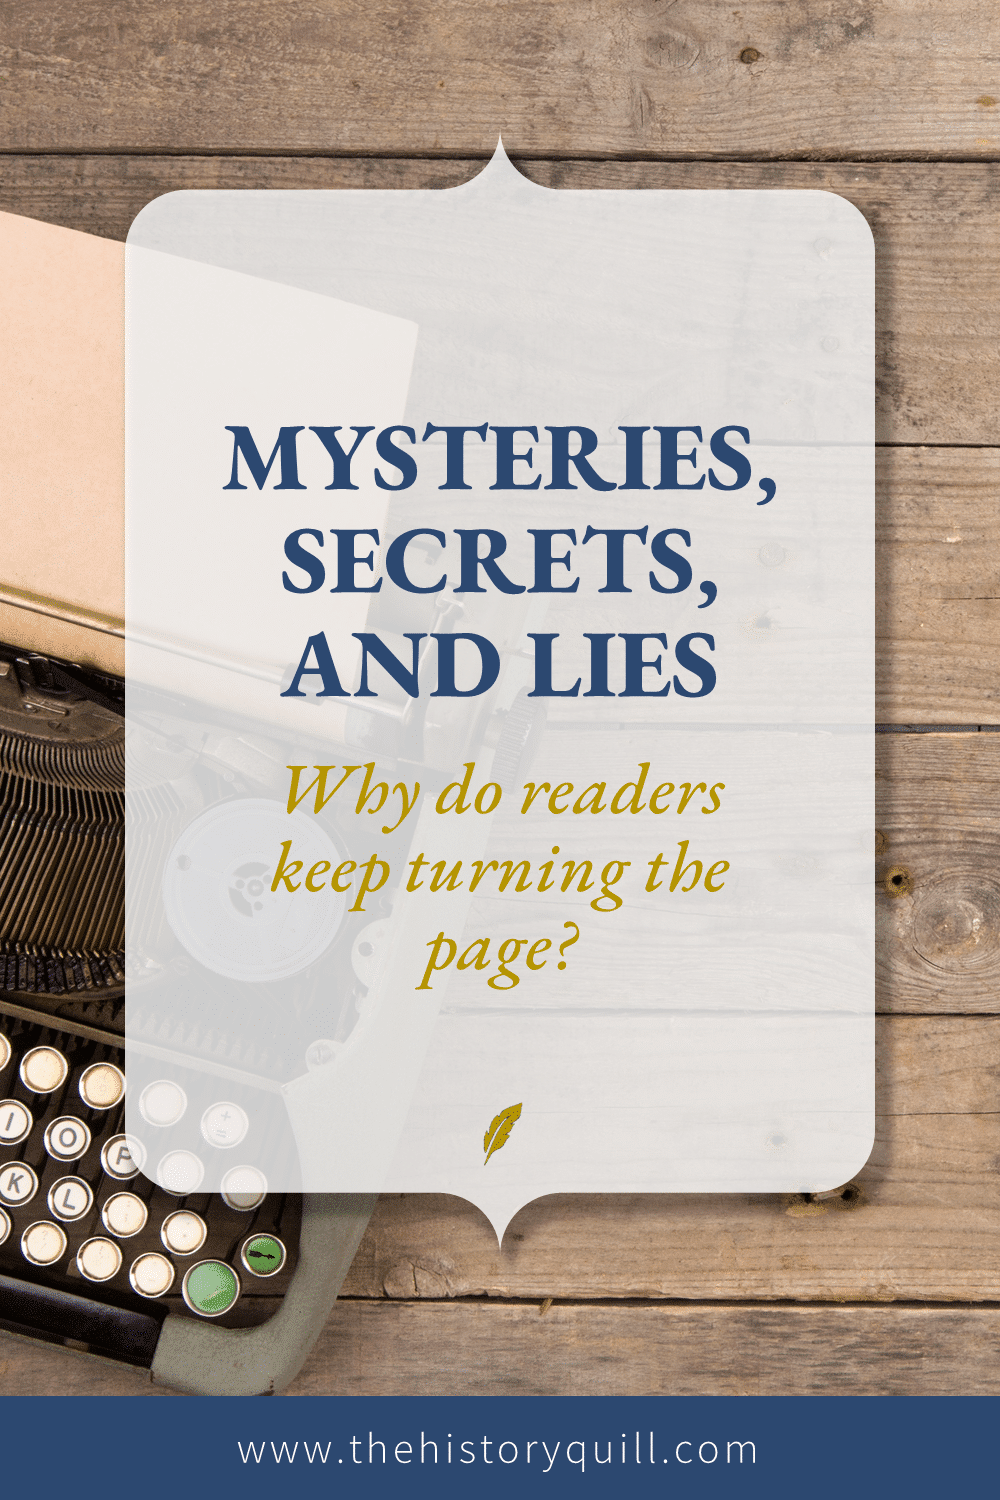 From The History Quill blog, learn how to keep readers turning the page with mysteries, secrets, and lies in your historical fiction.